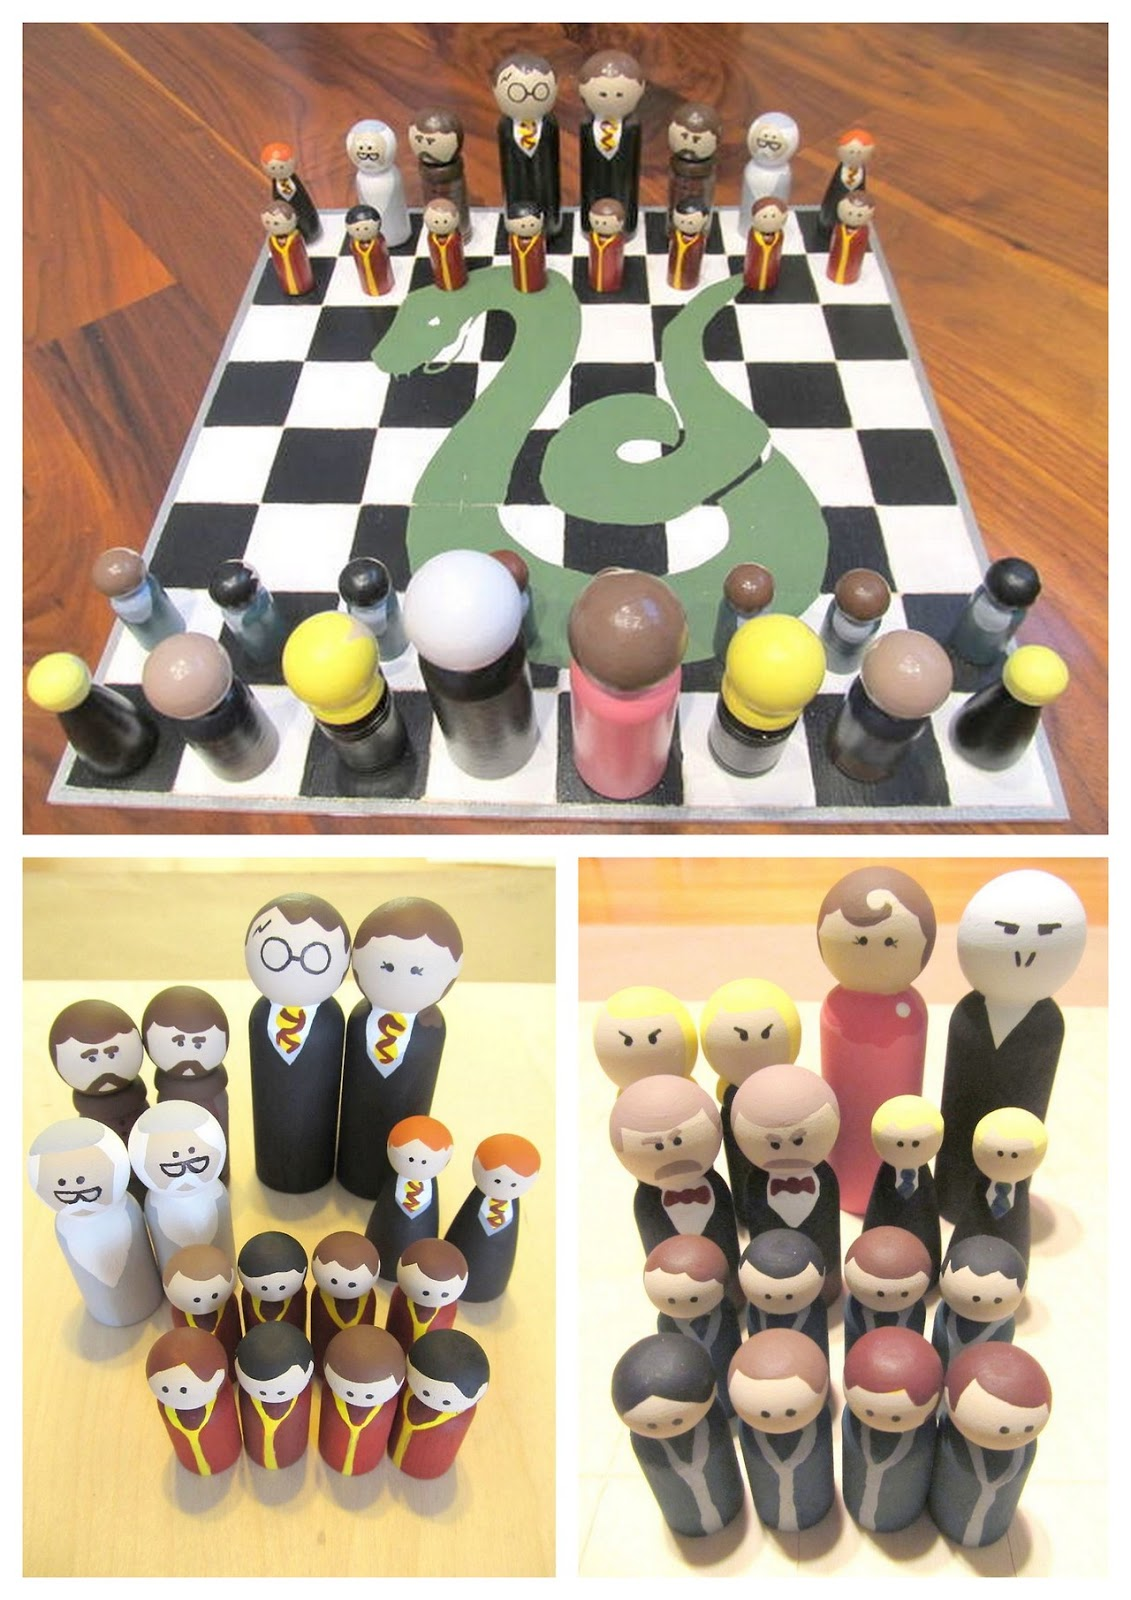 Make A Supremely Sweet Harry Potter Chess Set With Bag And